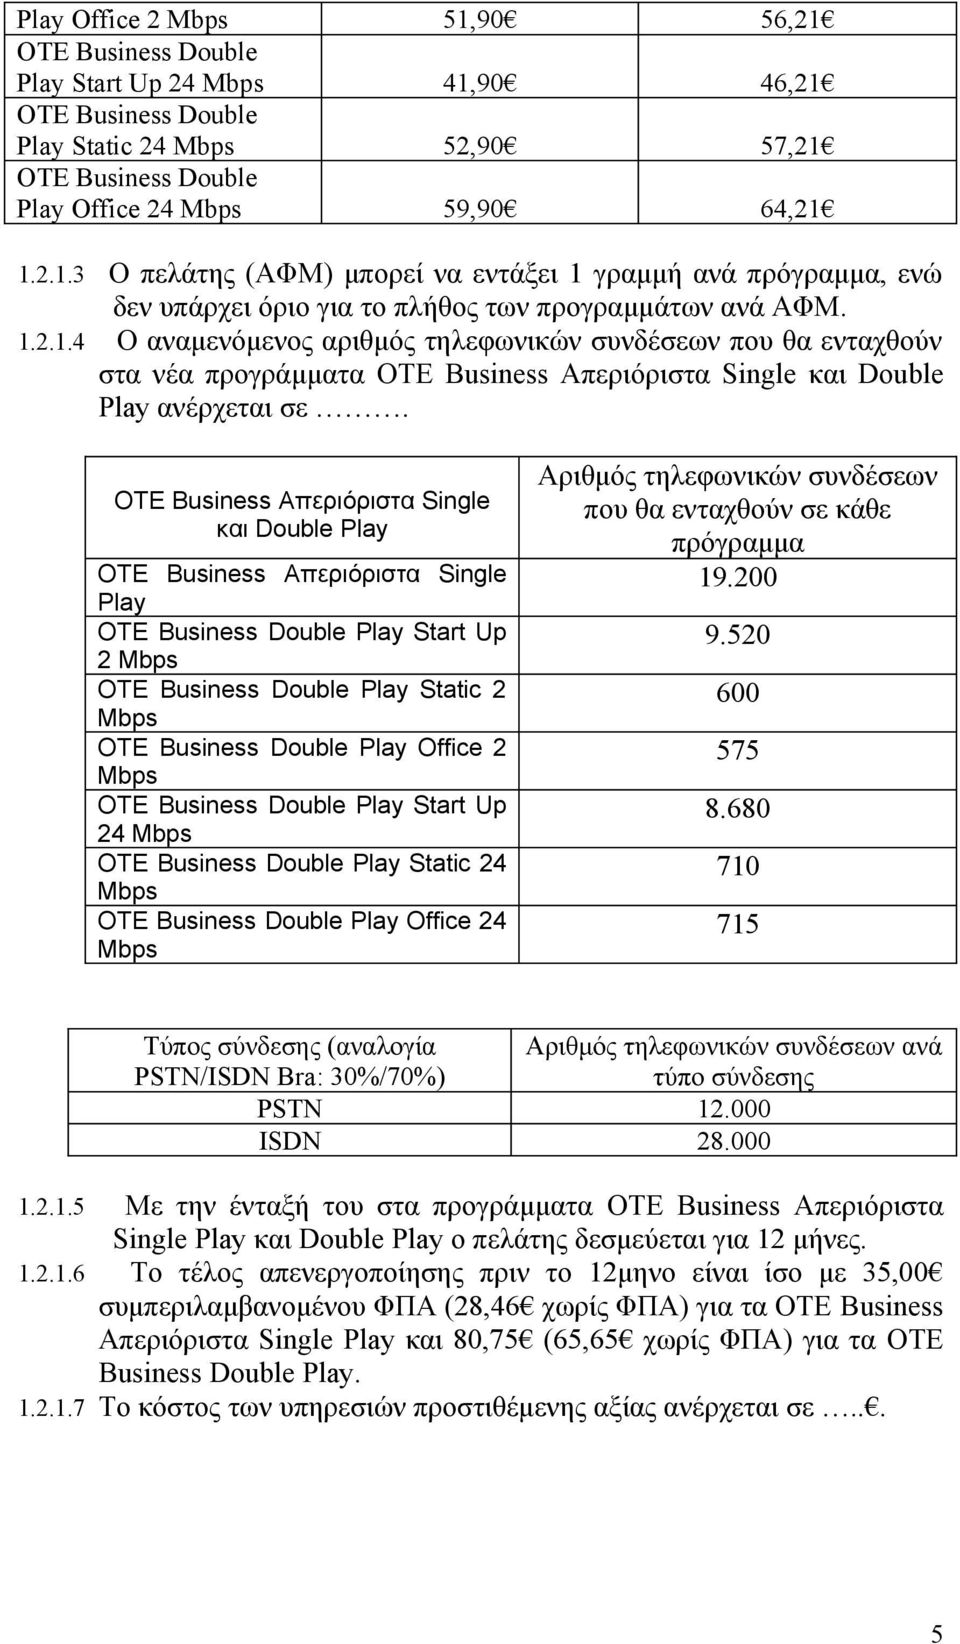 OTE Business Απεριόριστα Single και Double Play OTE Business Απεριόριστα Single Play OTE Business Double Play Start Up 2 OTE Business Double Play Static 2 OTE Business Double Play Office 2 OTE